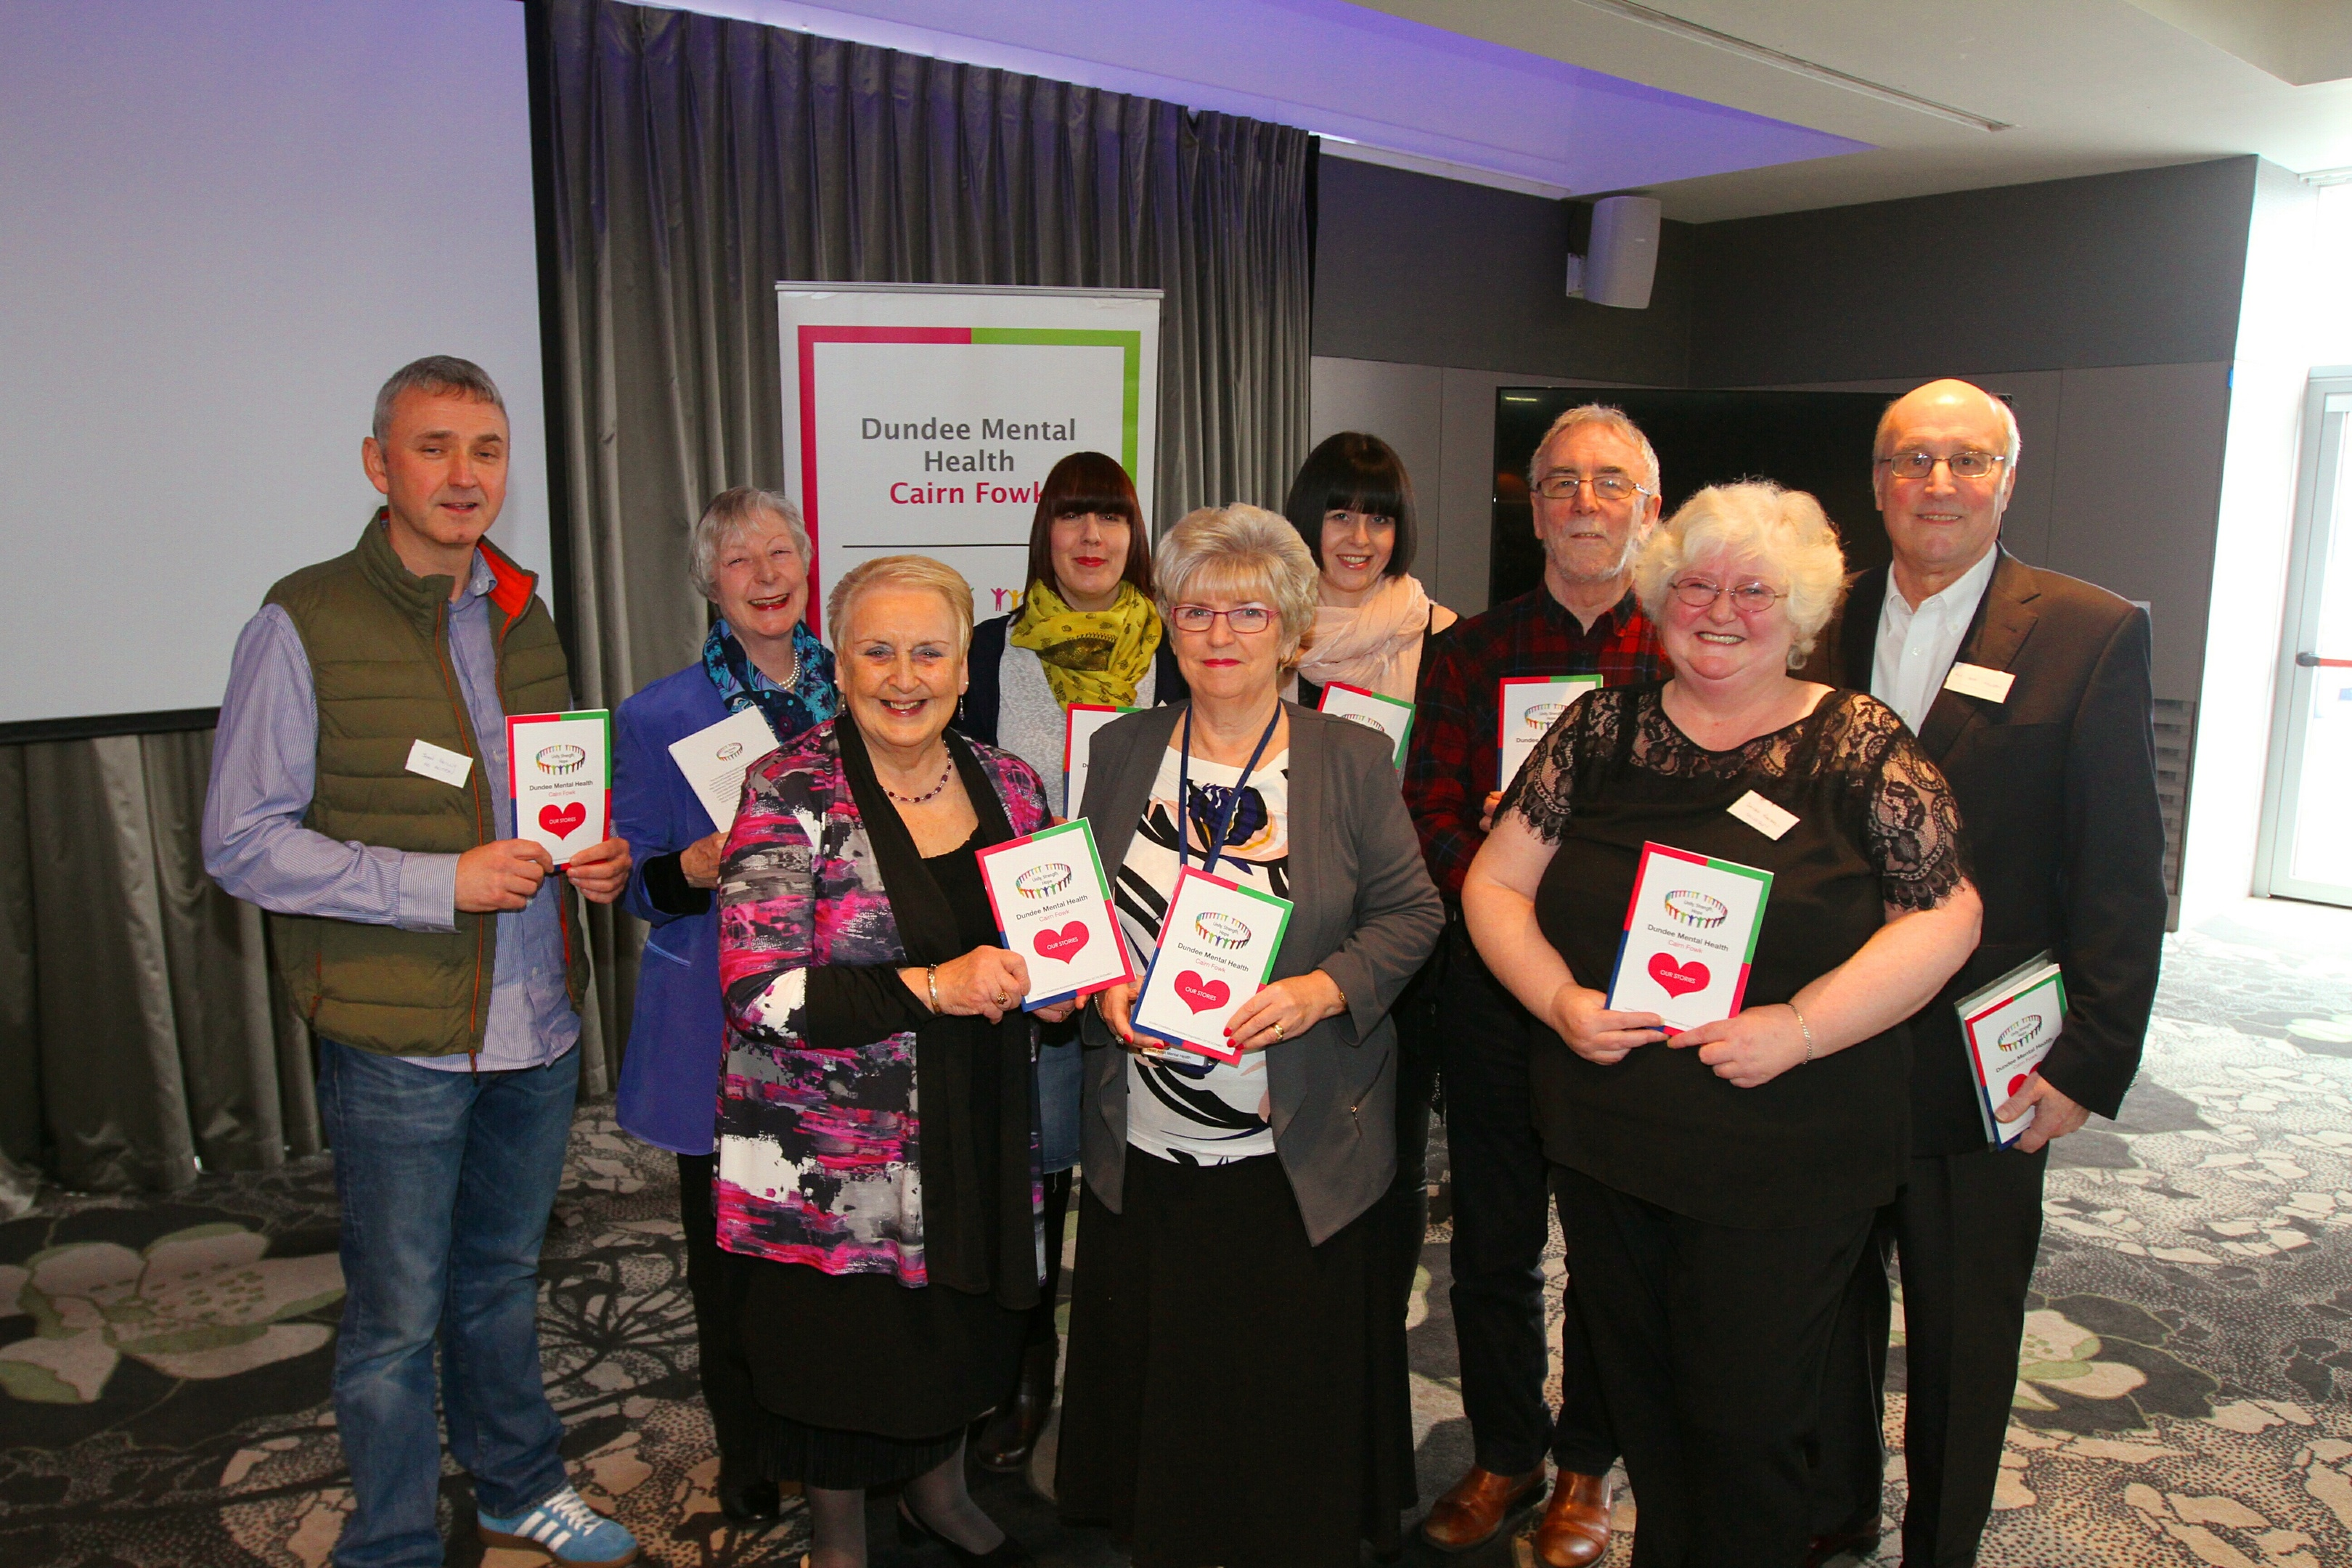 The group at Friday's conference with guest speakers.